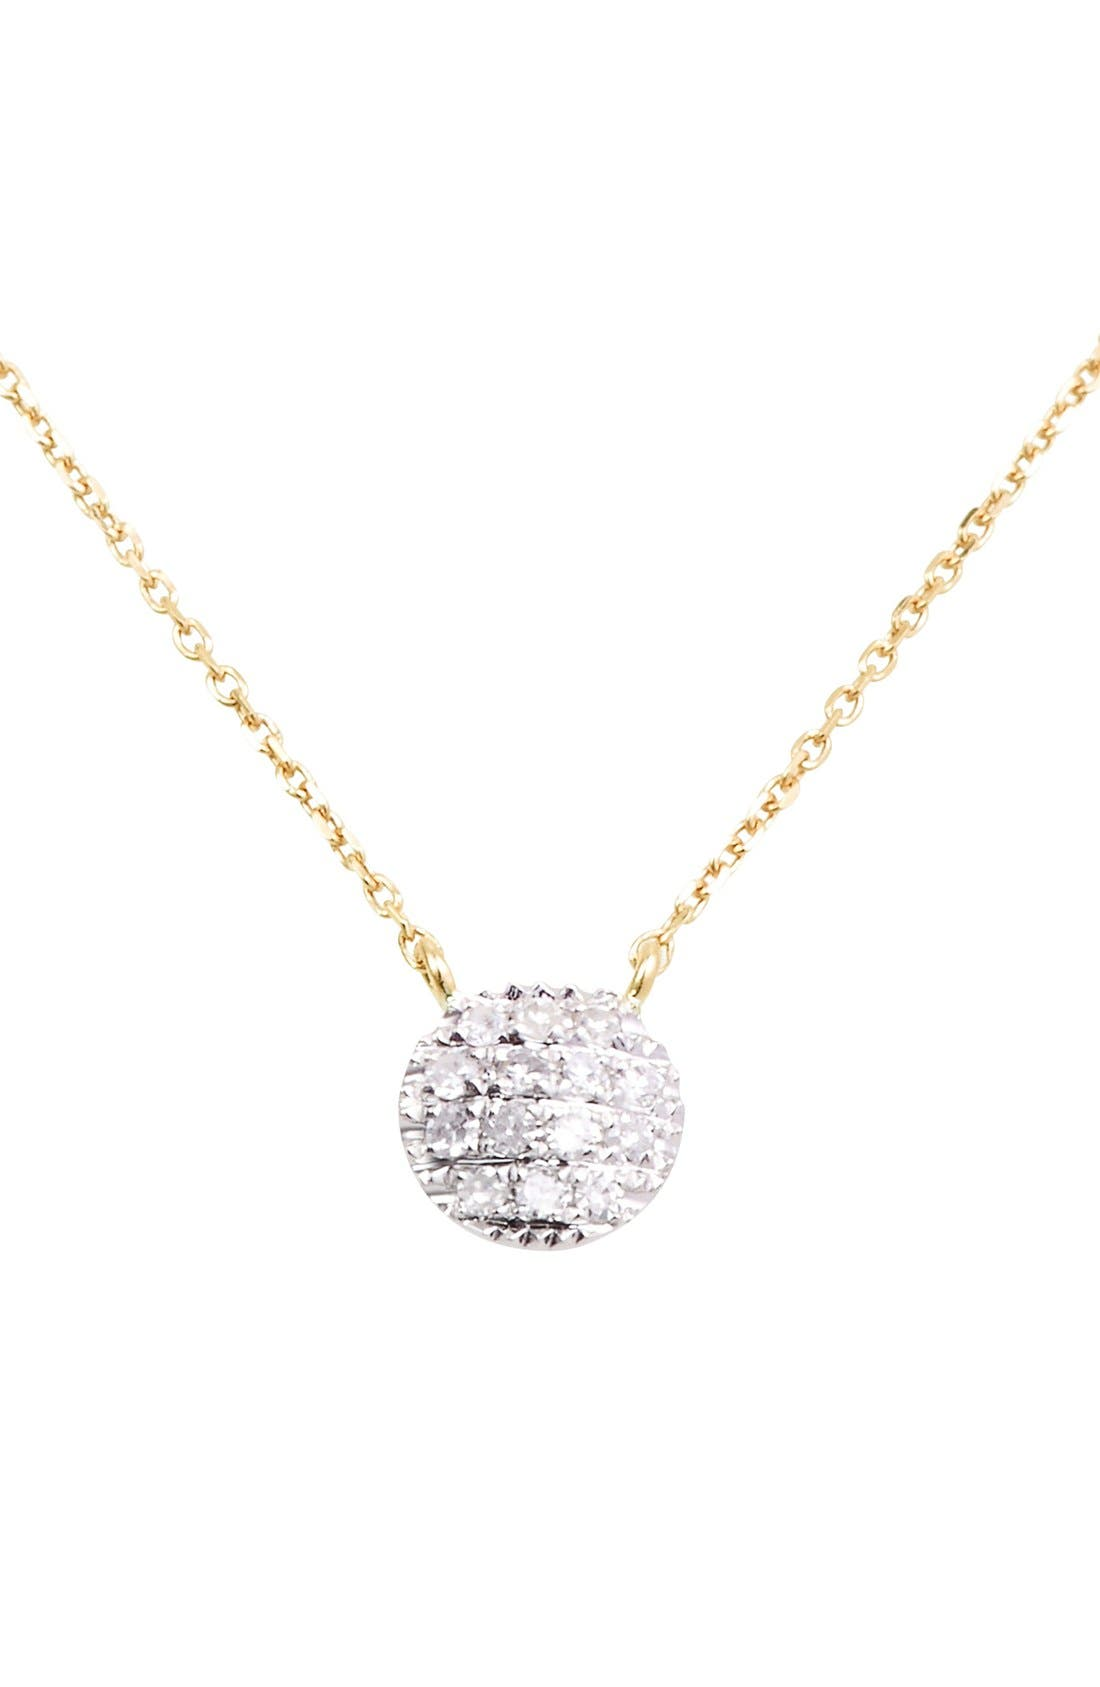 Womens 14K Gold Necklaces Nordstrom